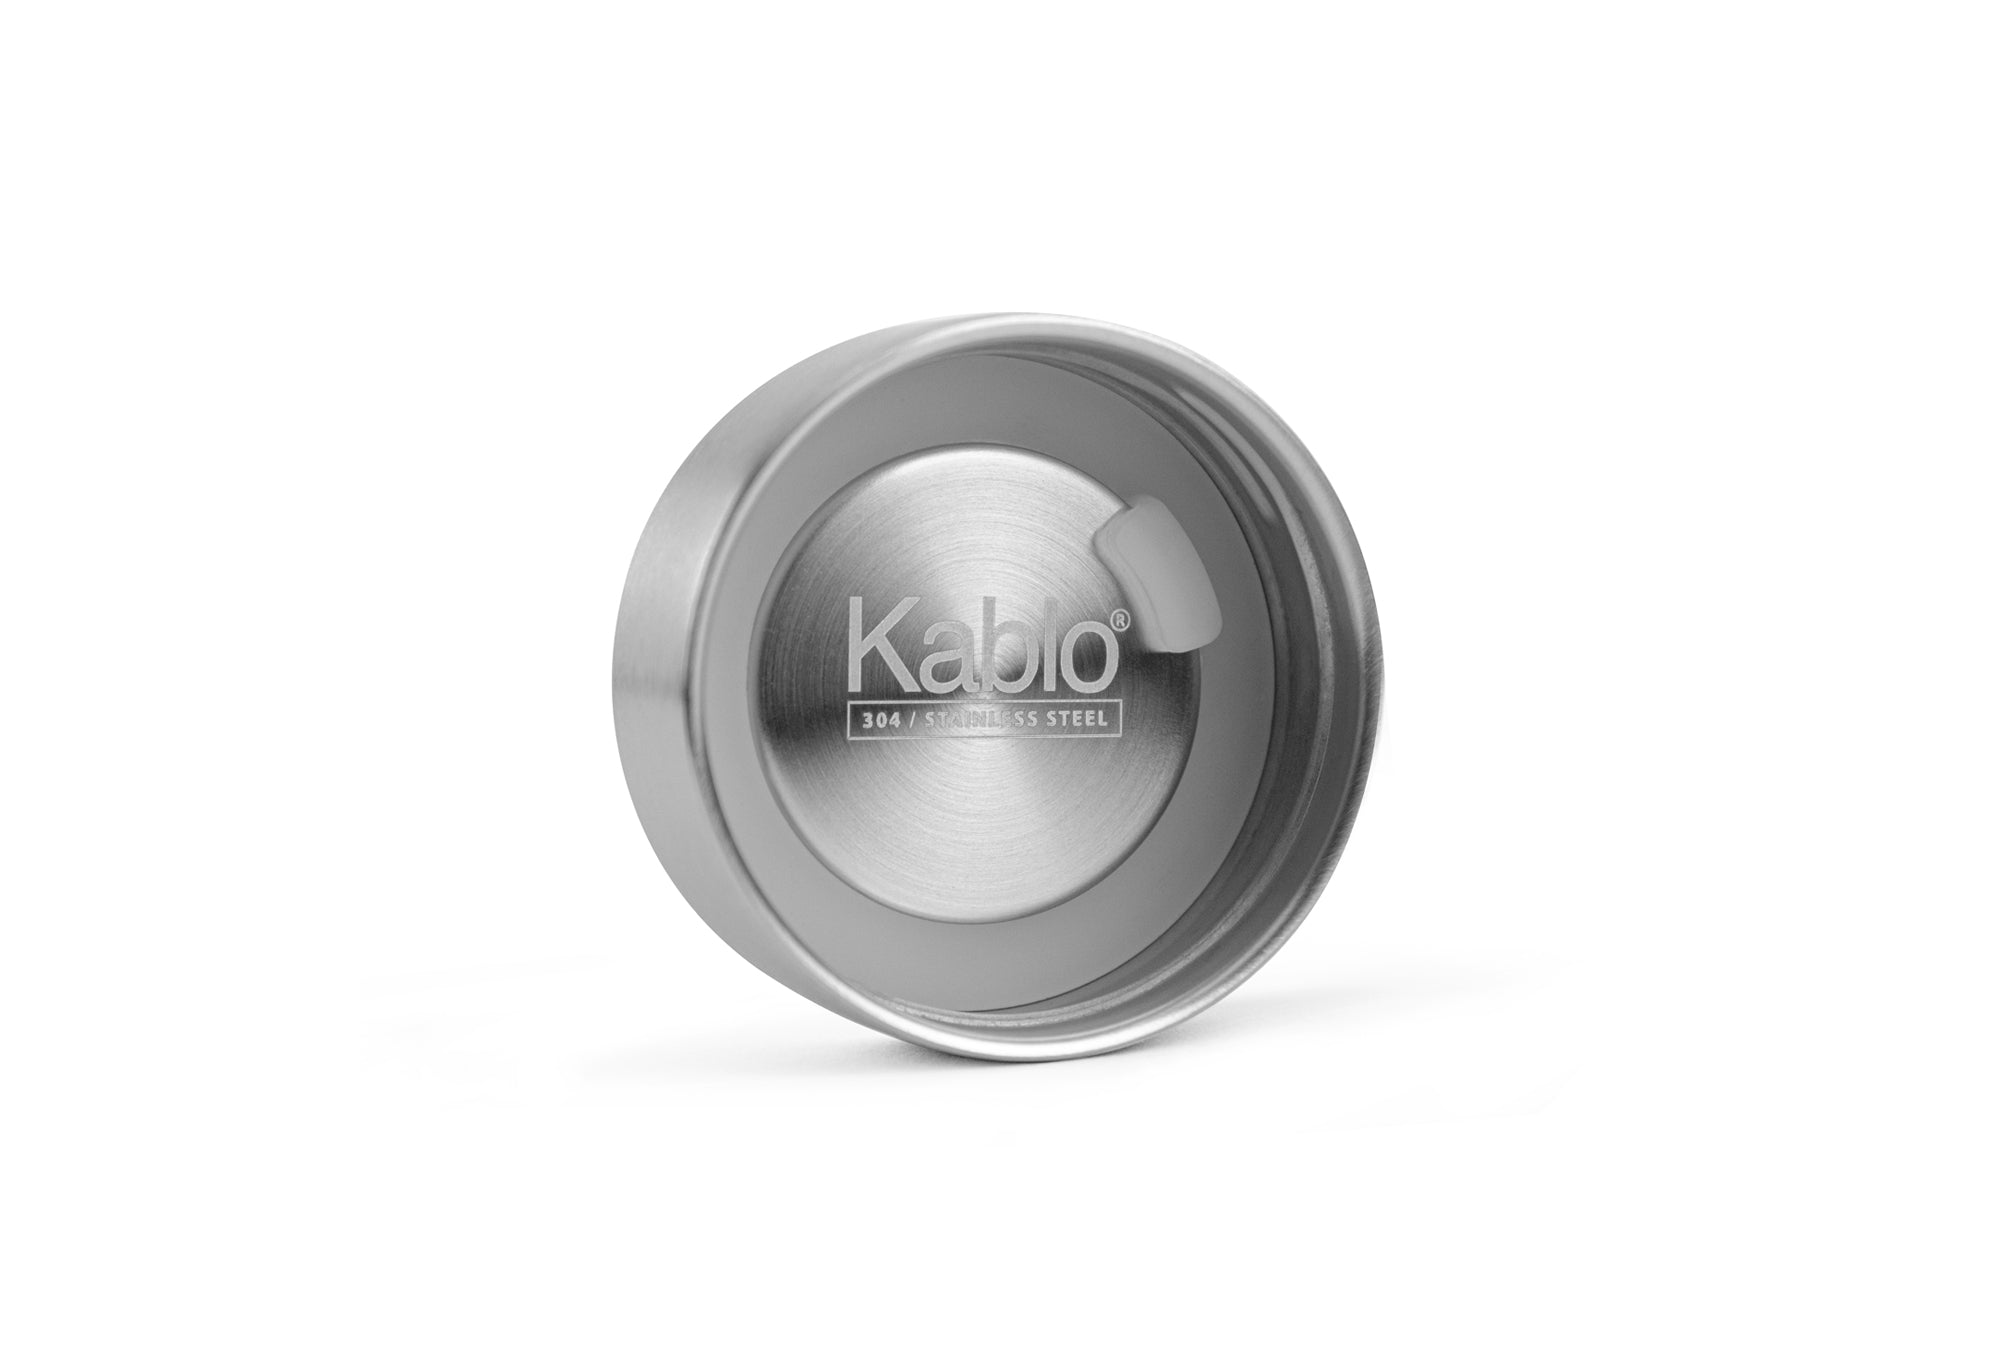 Stainless Steel Cap for 2nd Generation Kablo Bottles